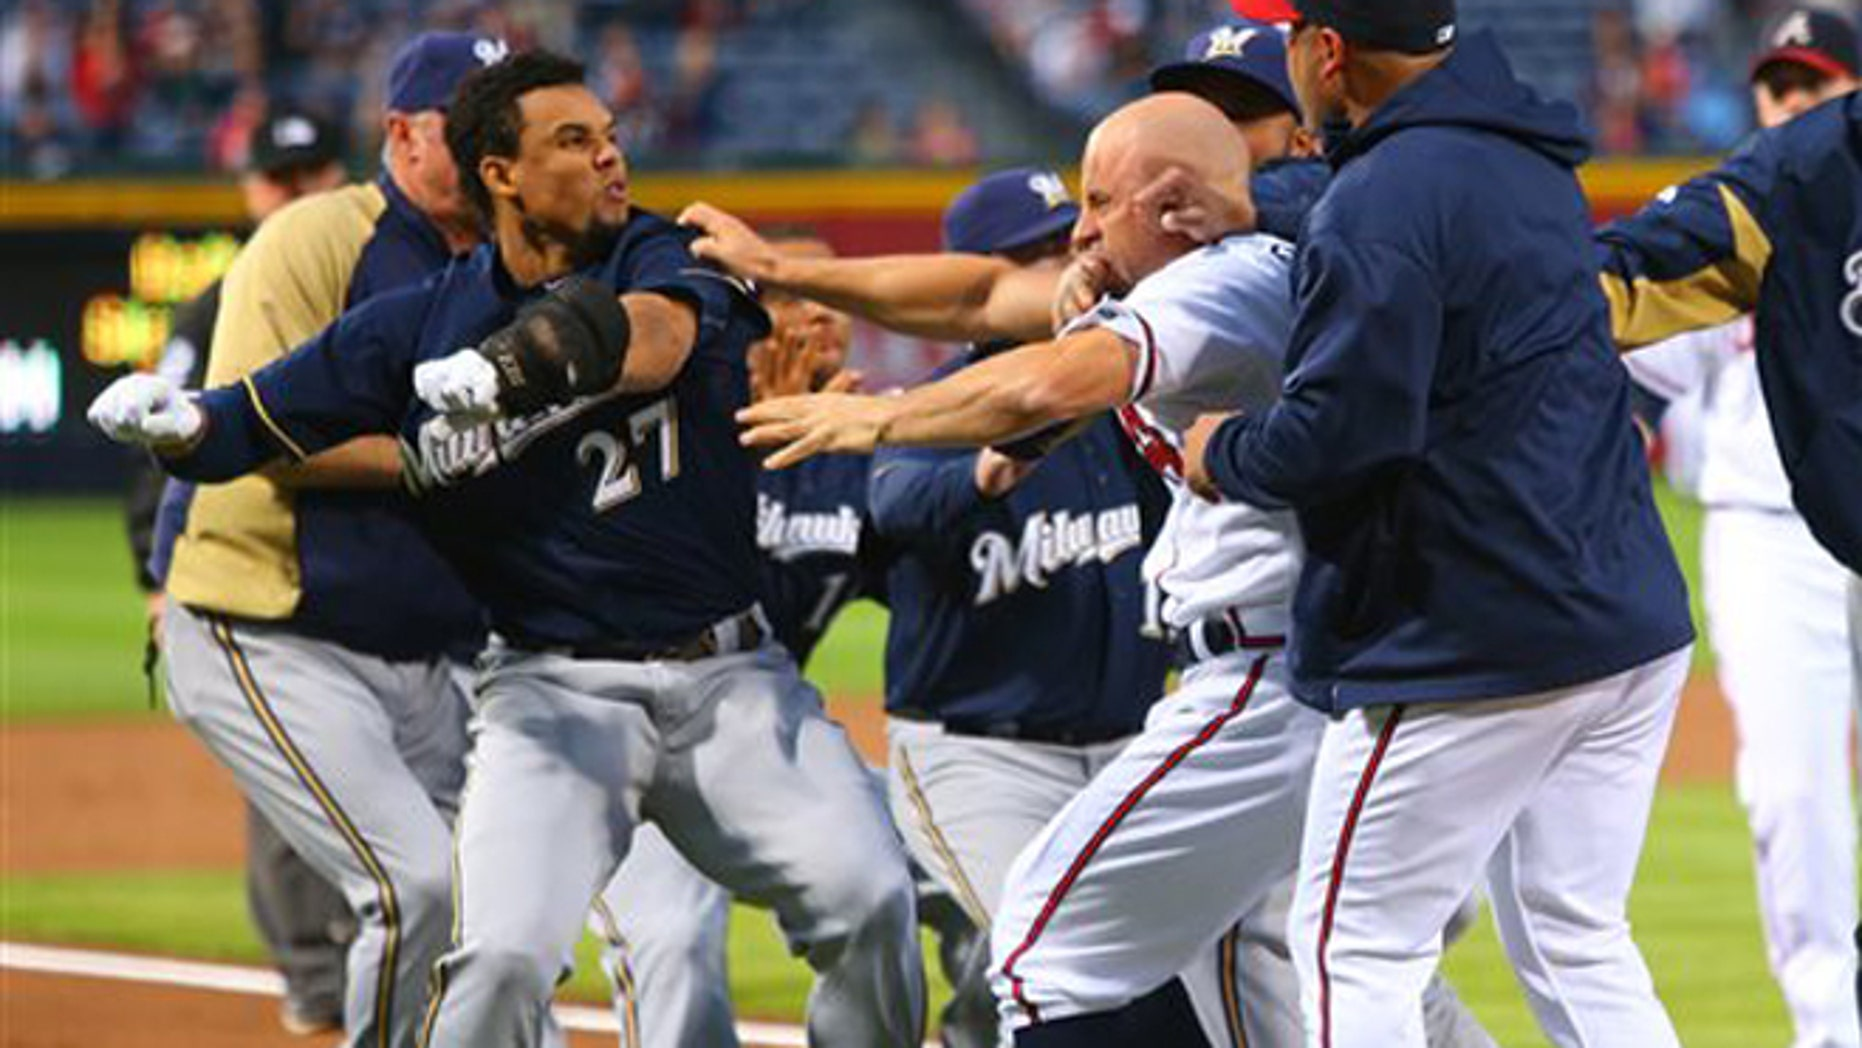 Carlos Gomez, left, and Atlanta Braves Reed Johnson exchange blows following a home run by Gomez on Wednesday, Sept. 25, 2013.